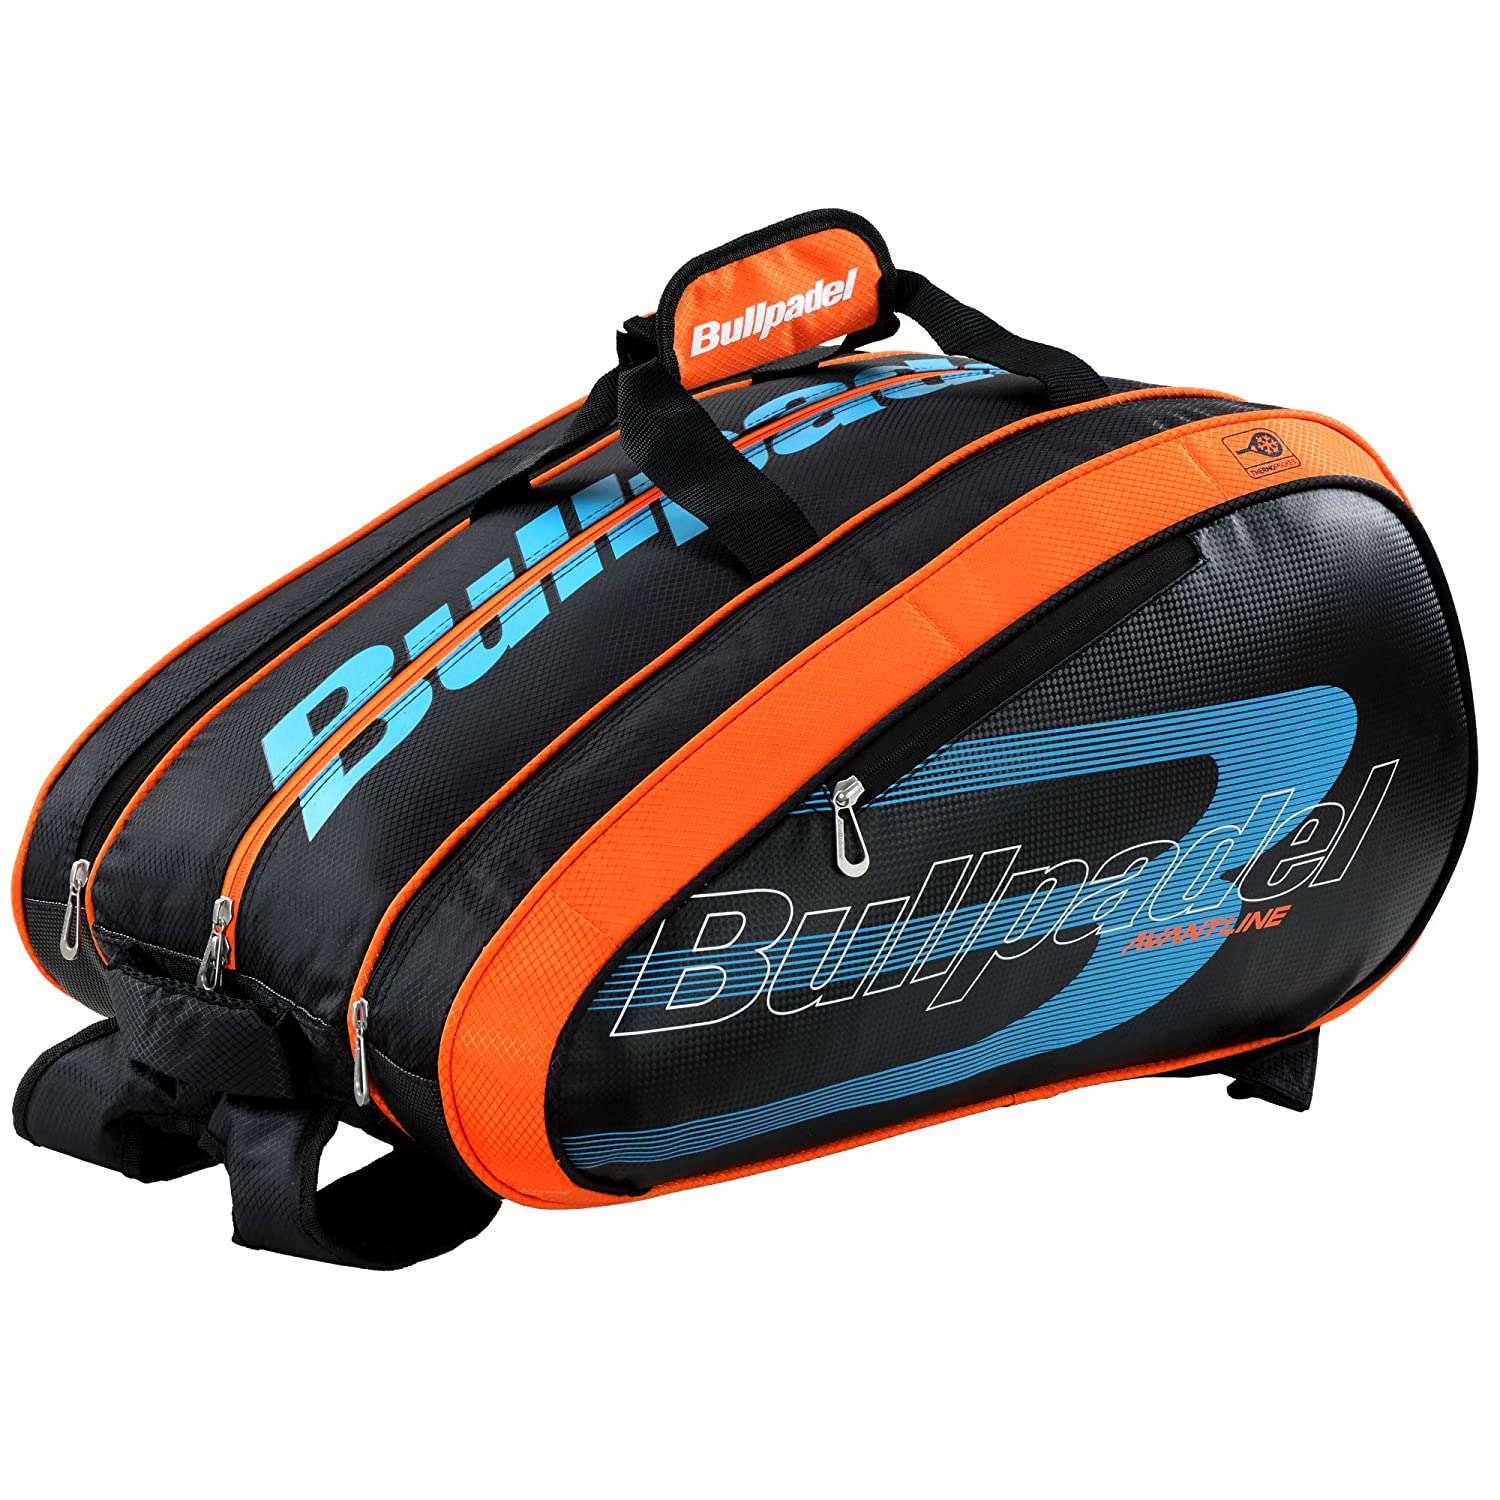 Paletero Bullpadel Avant S LTD Orange: Amazon.es: Deportes y aire ...